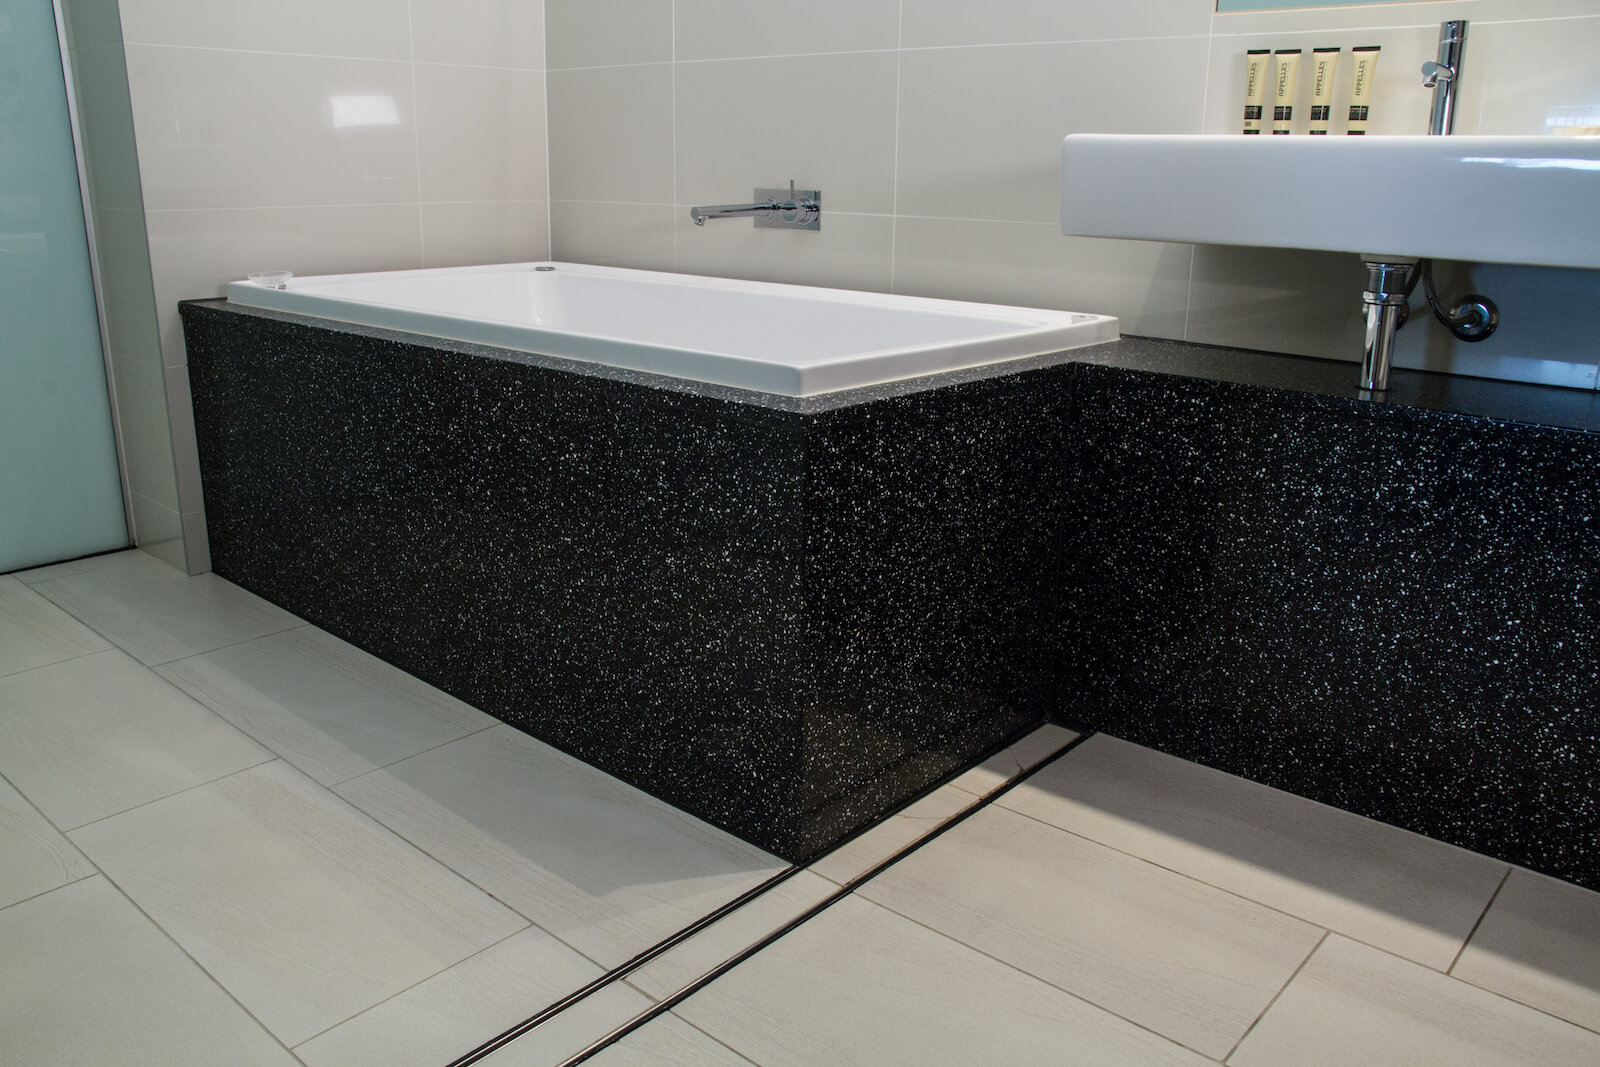 stone bathrooms repairs, polishing, sealing sunshine coast